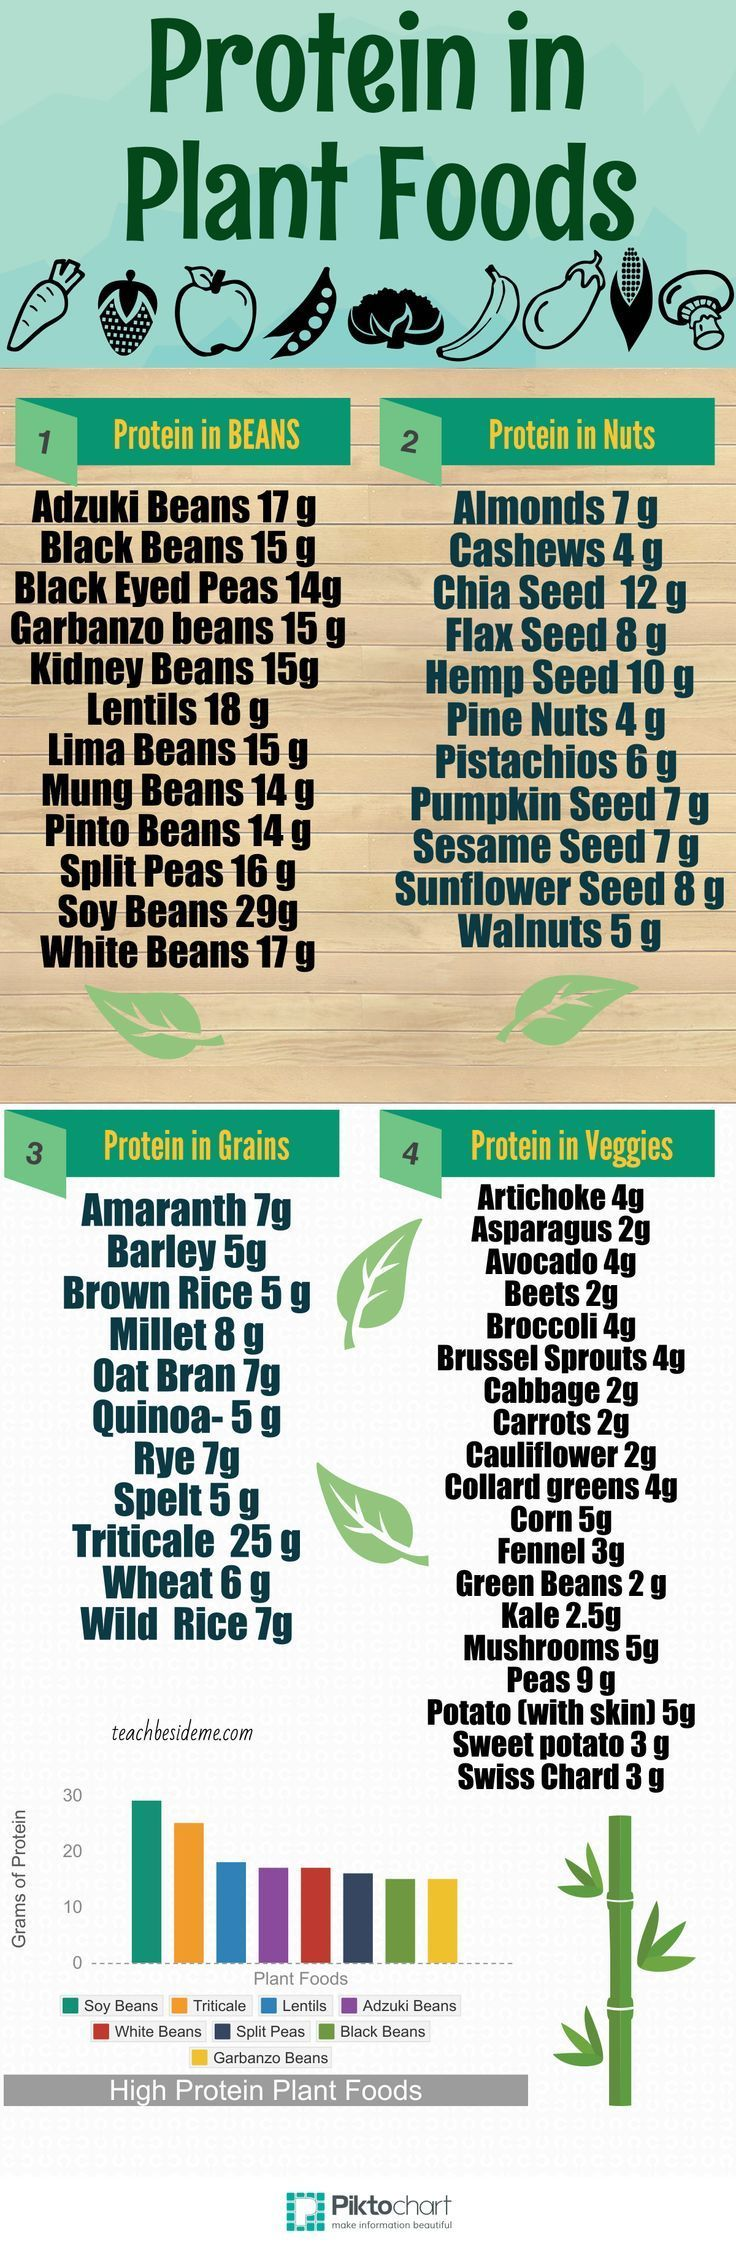 This is important to know because, I'm slowly changing my eating ways from ( meat eater to vegan)